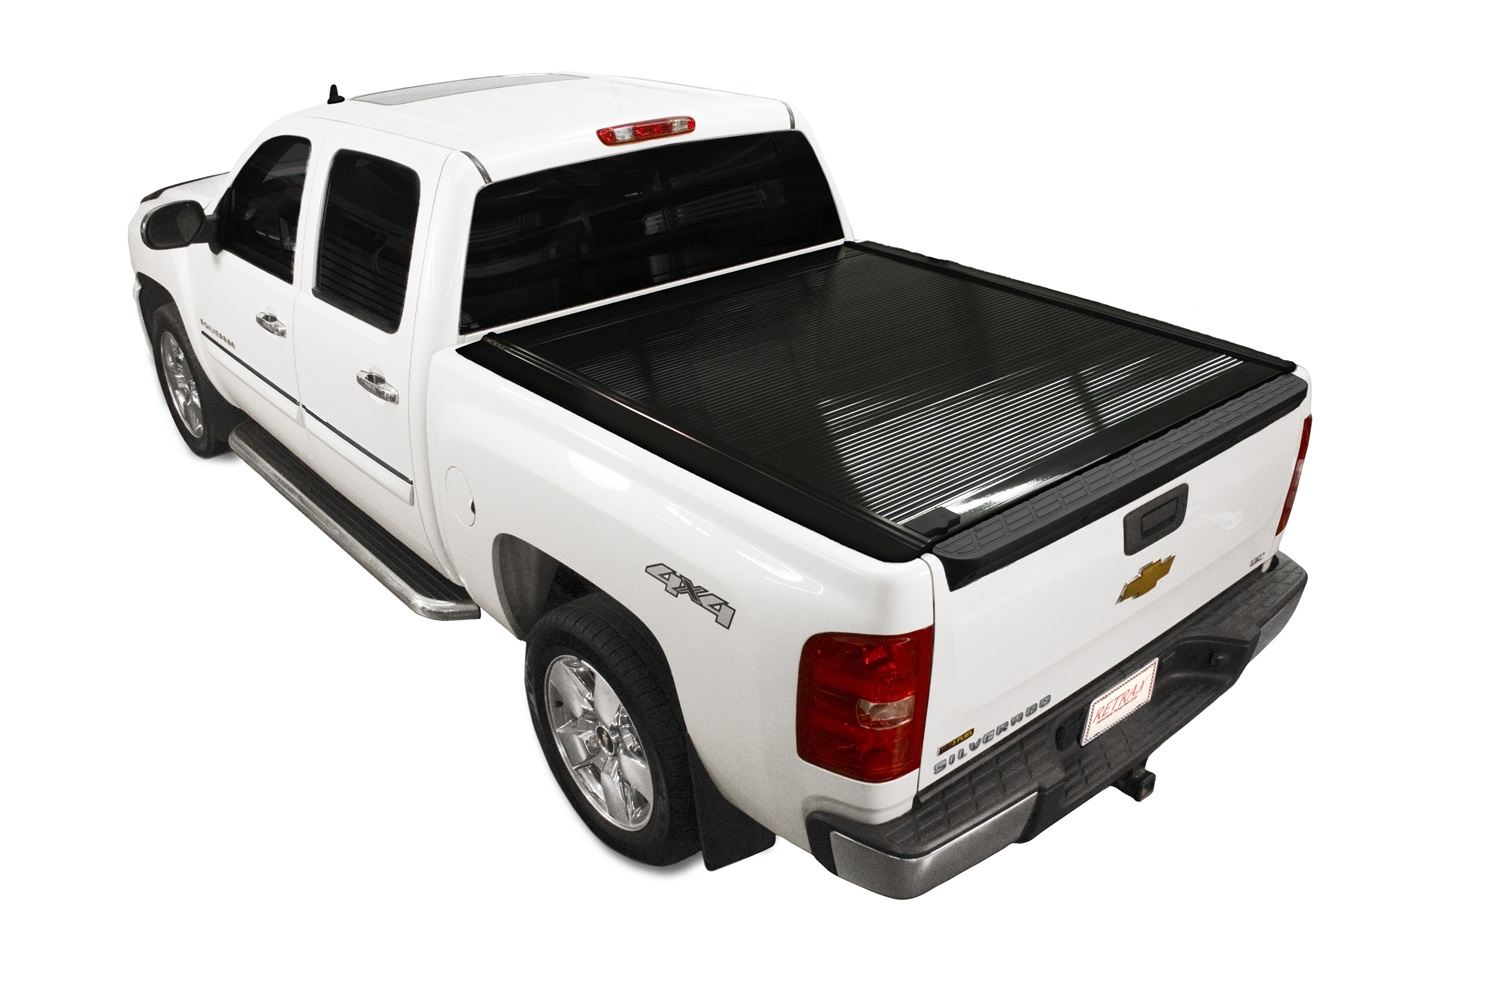 Retrax RetraxOne Tonneau Cover - Retrax 10472